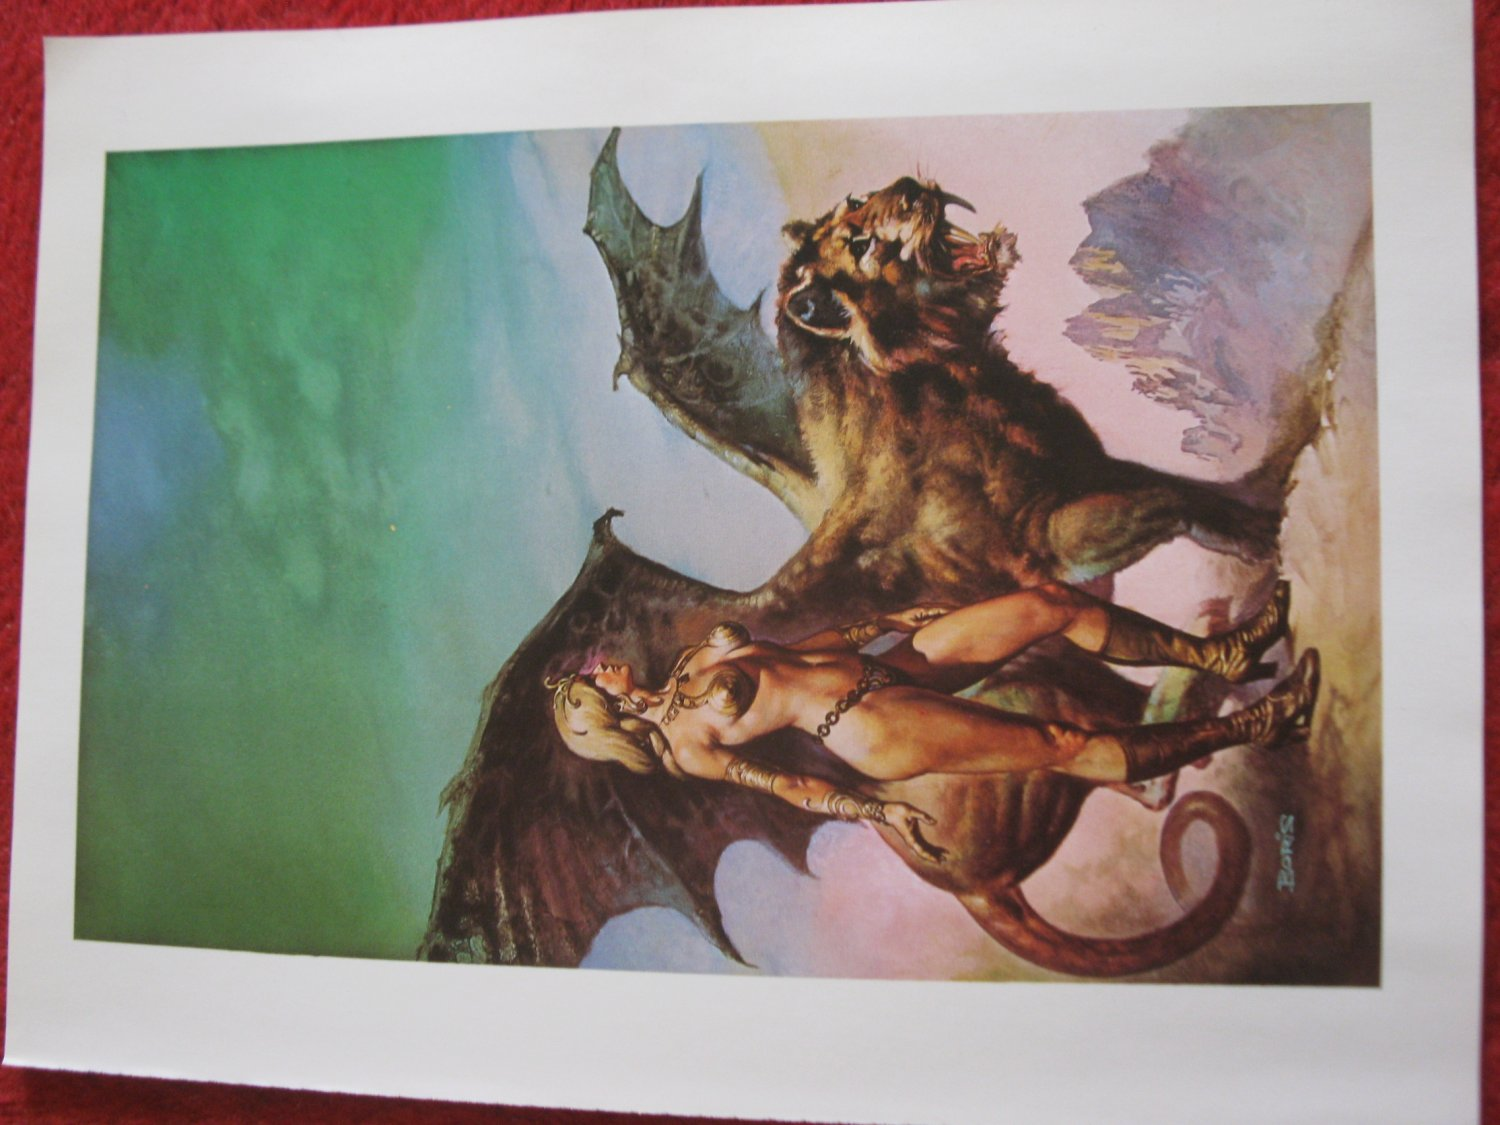 "vintage Boris Vallejo: The High Couch of Silistra - 11.5"" x 8.5"" Book Plate Print"